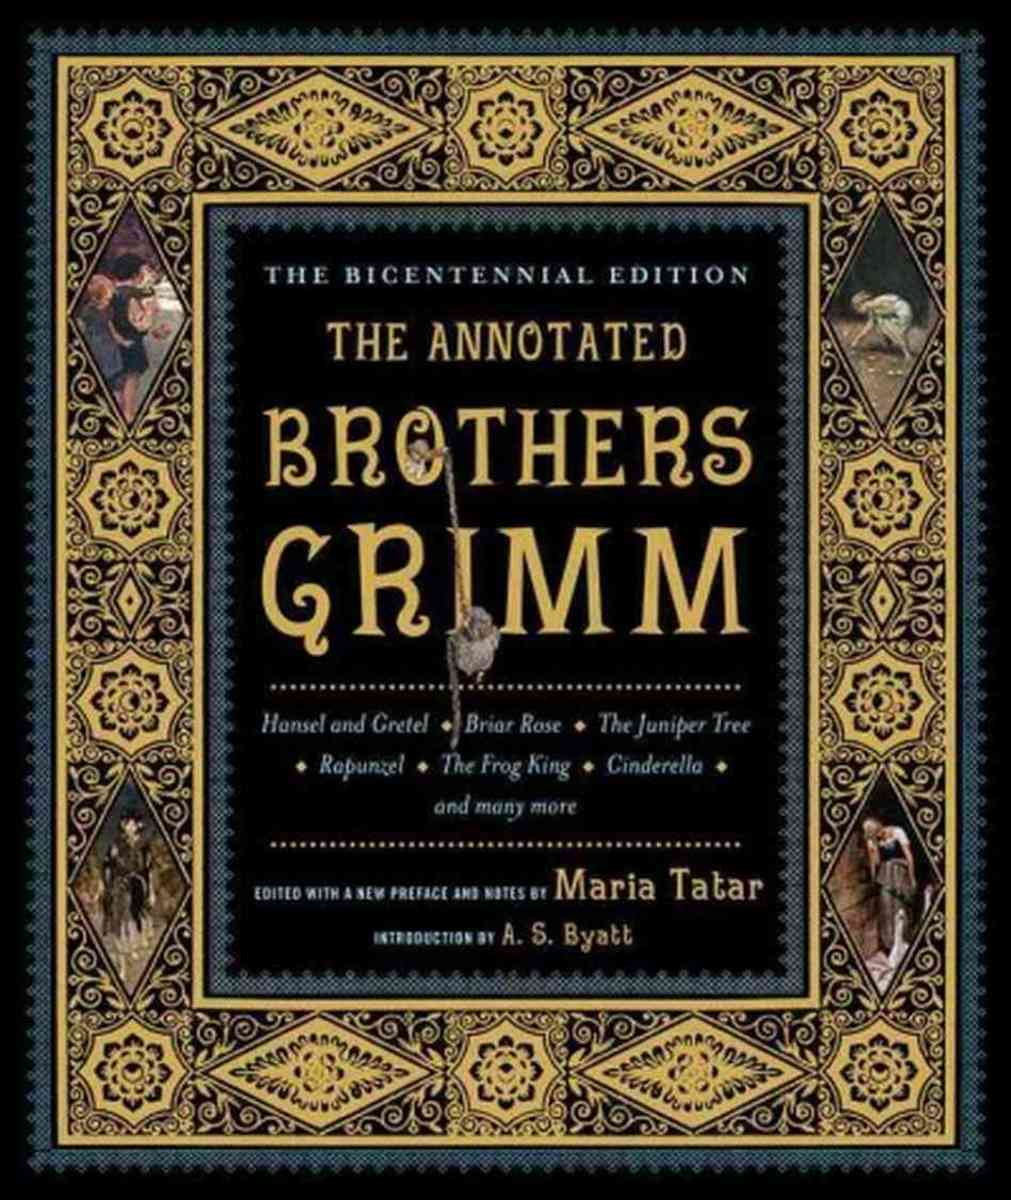 A book of the Brothers Grimm